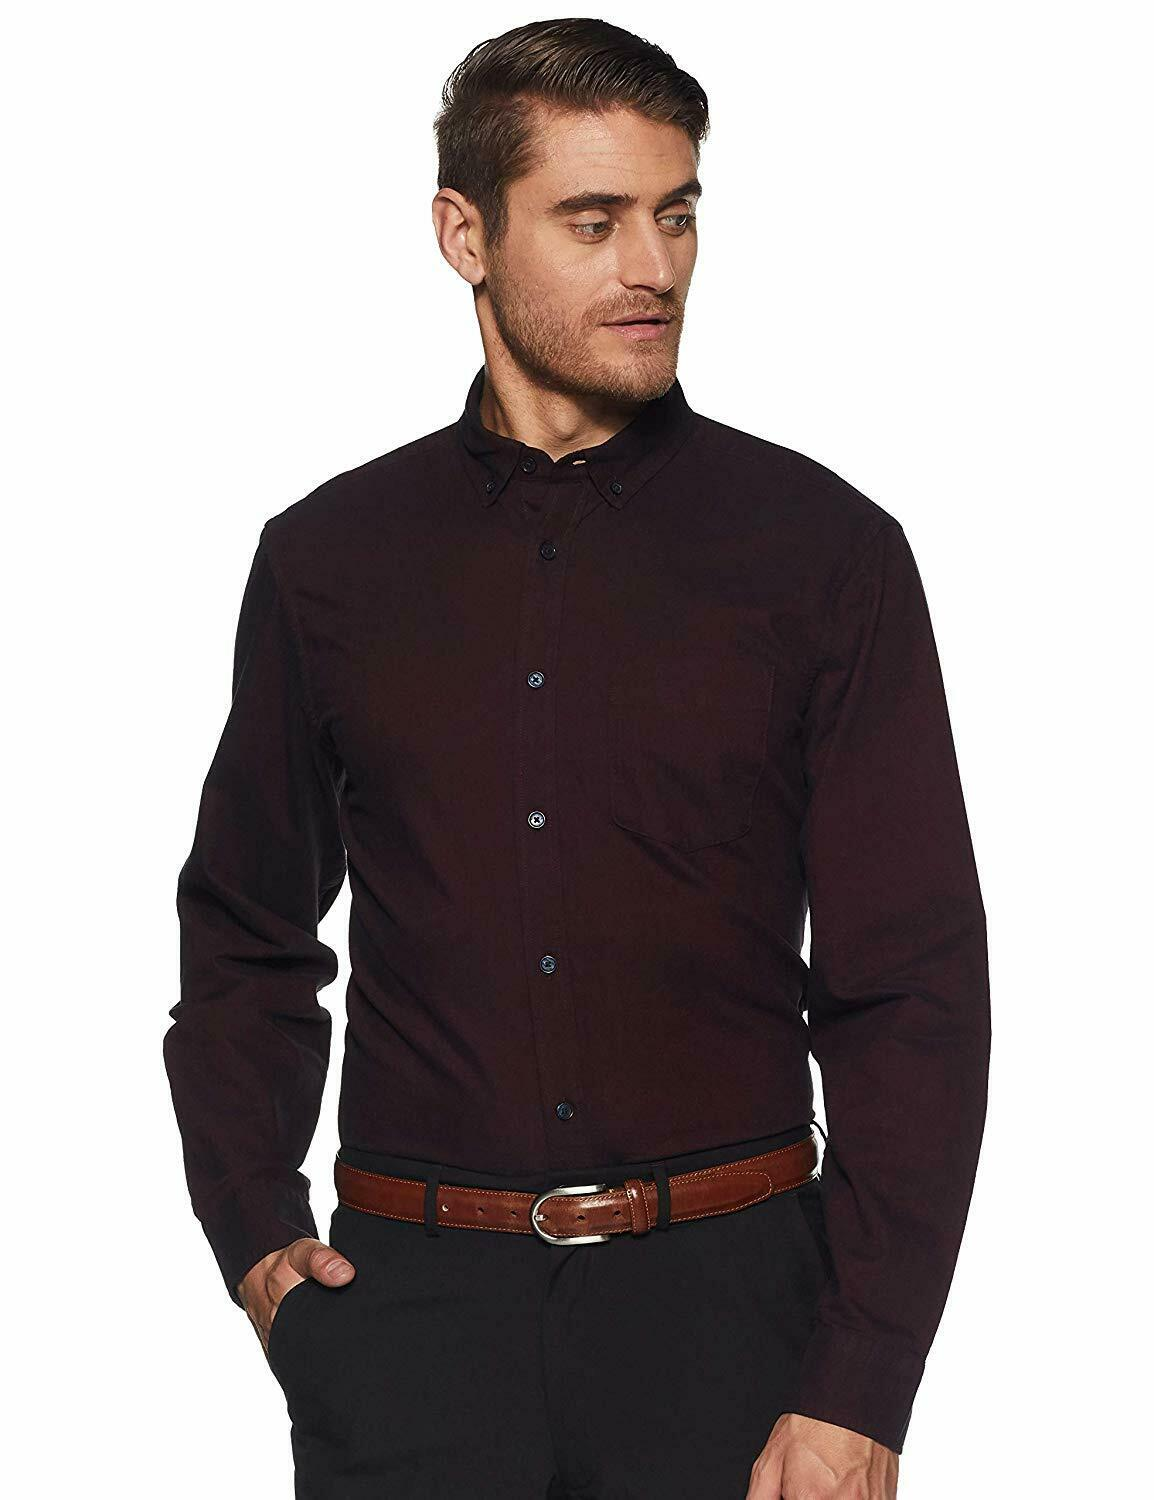 Shirt Nick and Jess for Men Pure Cotton Regular fit Formal with Long Sleeves